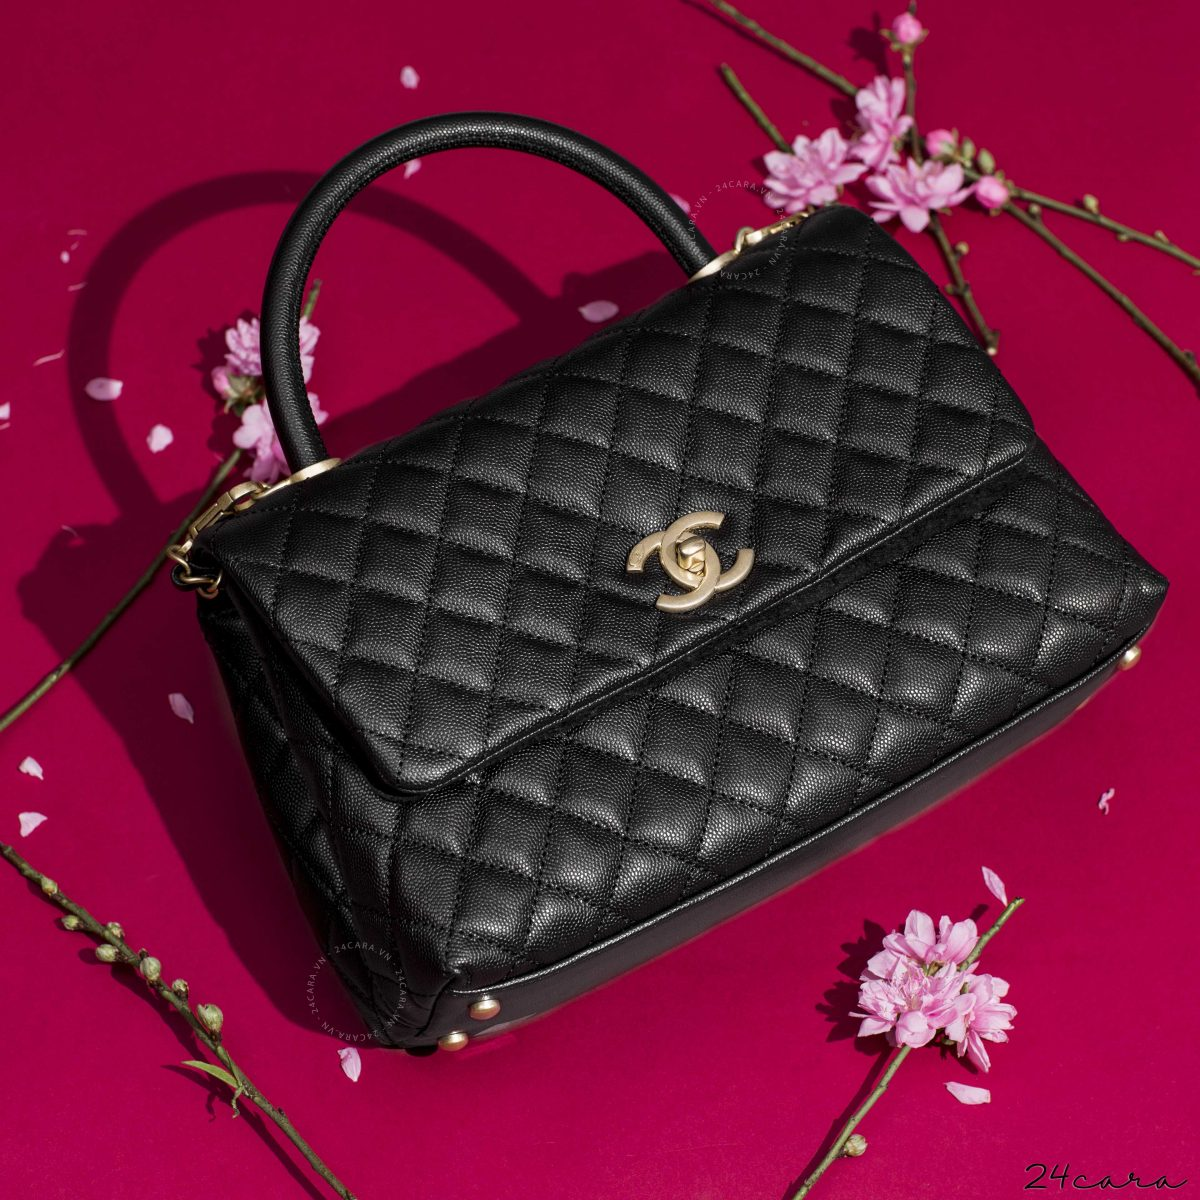 CHANEL COCO FLAP BAG BLACK GRAINED CALFSKIN & GOLD TONE METAL WITH TOP HANDLE